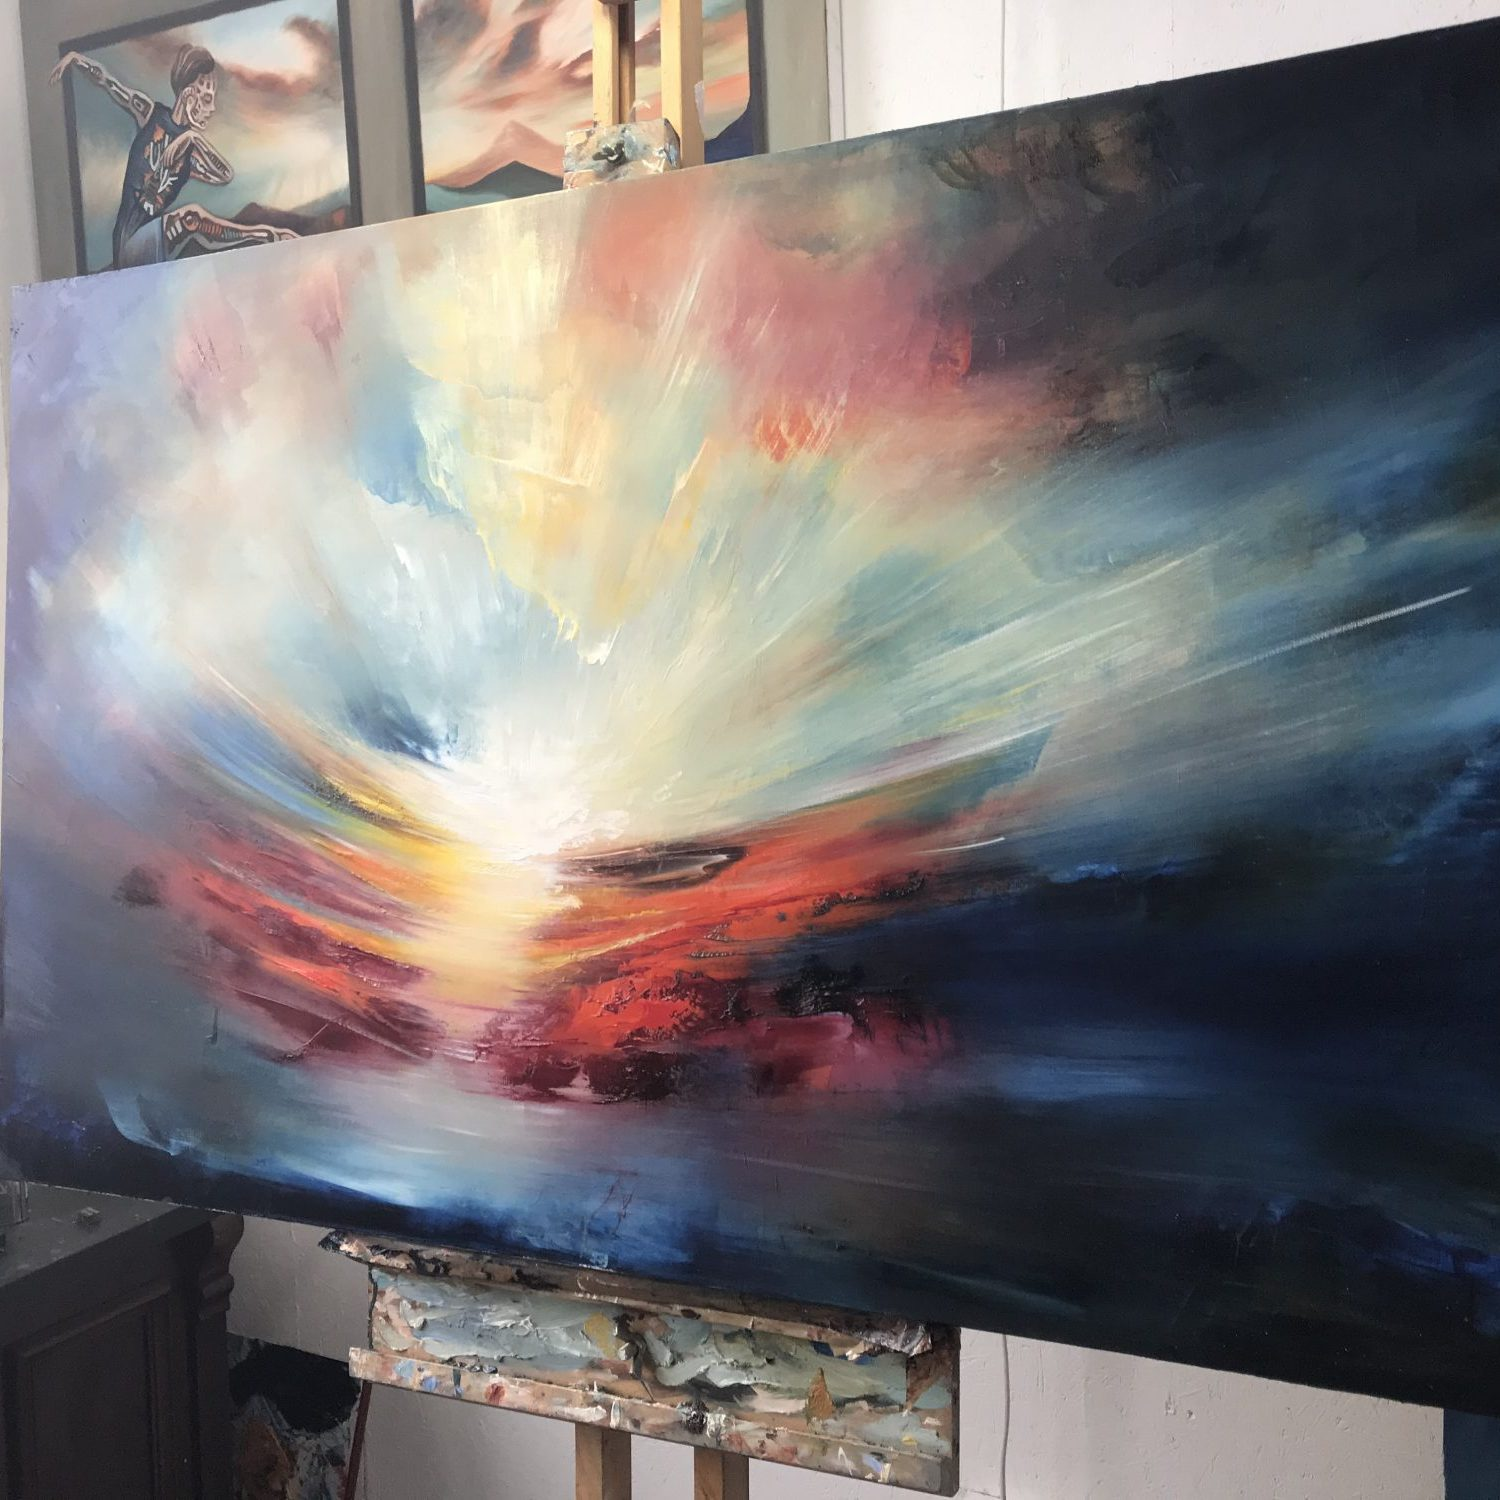 Etheric Sun - abstract landscape painting by Paul Kingsley Squire